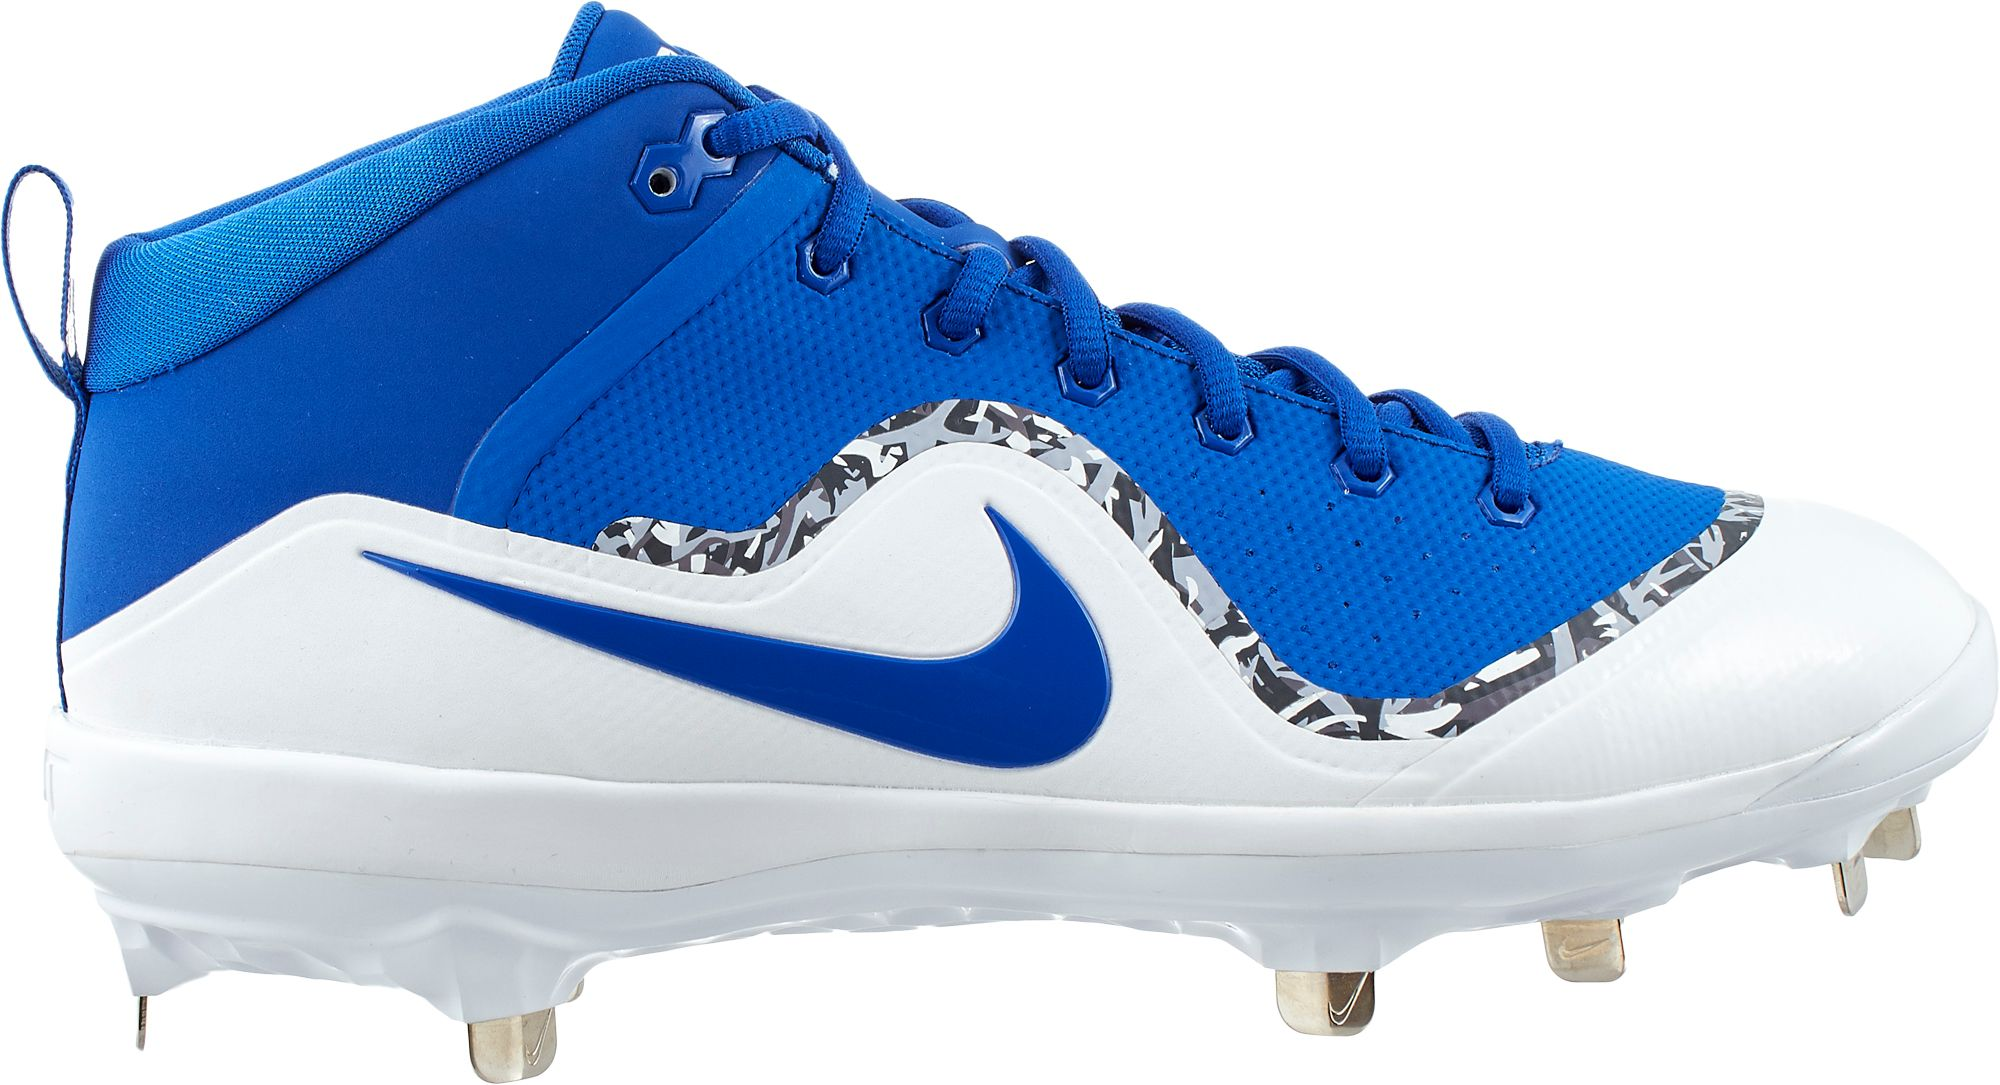 newest 2476f 1ac3b Nike Mens Force Air Trout 4 Pro Metal Baseball Cleats, Size 12.0, Blue